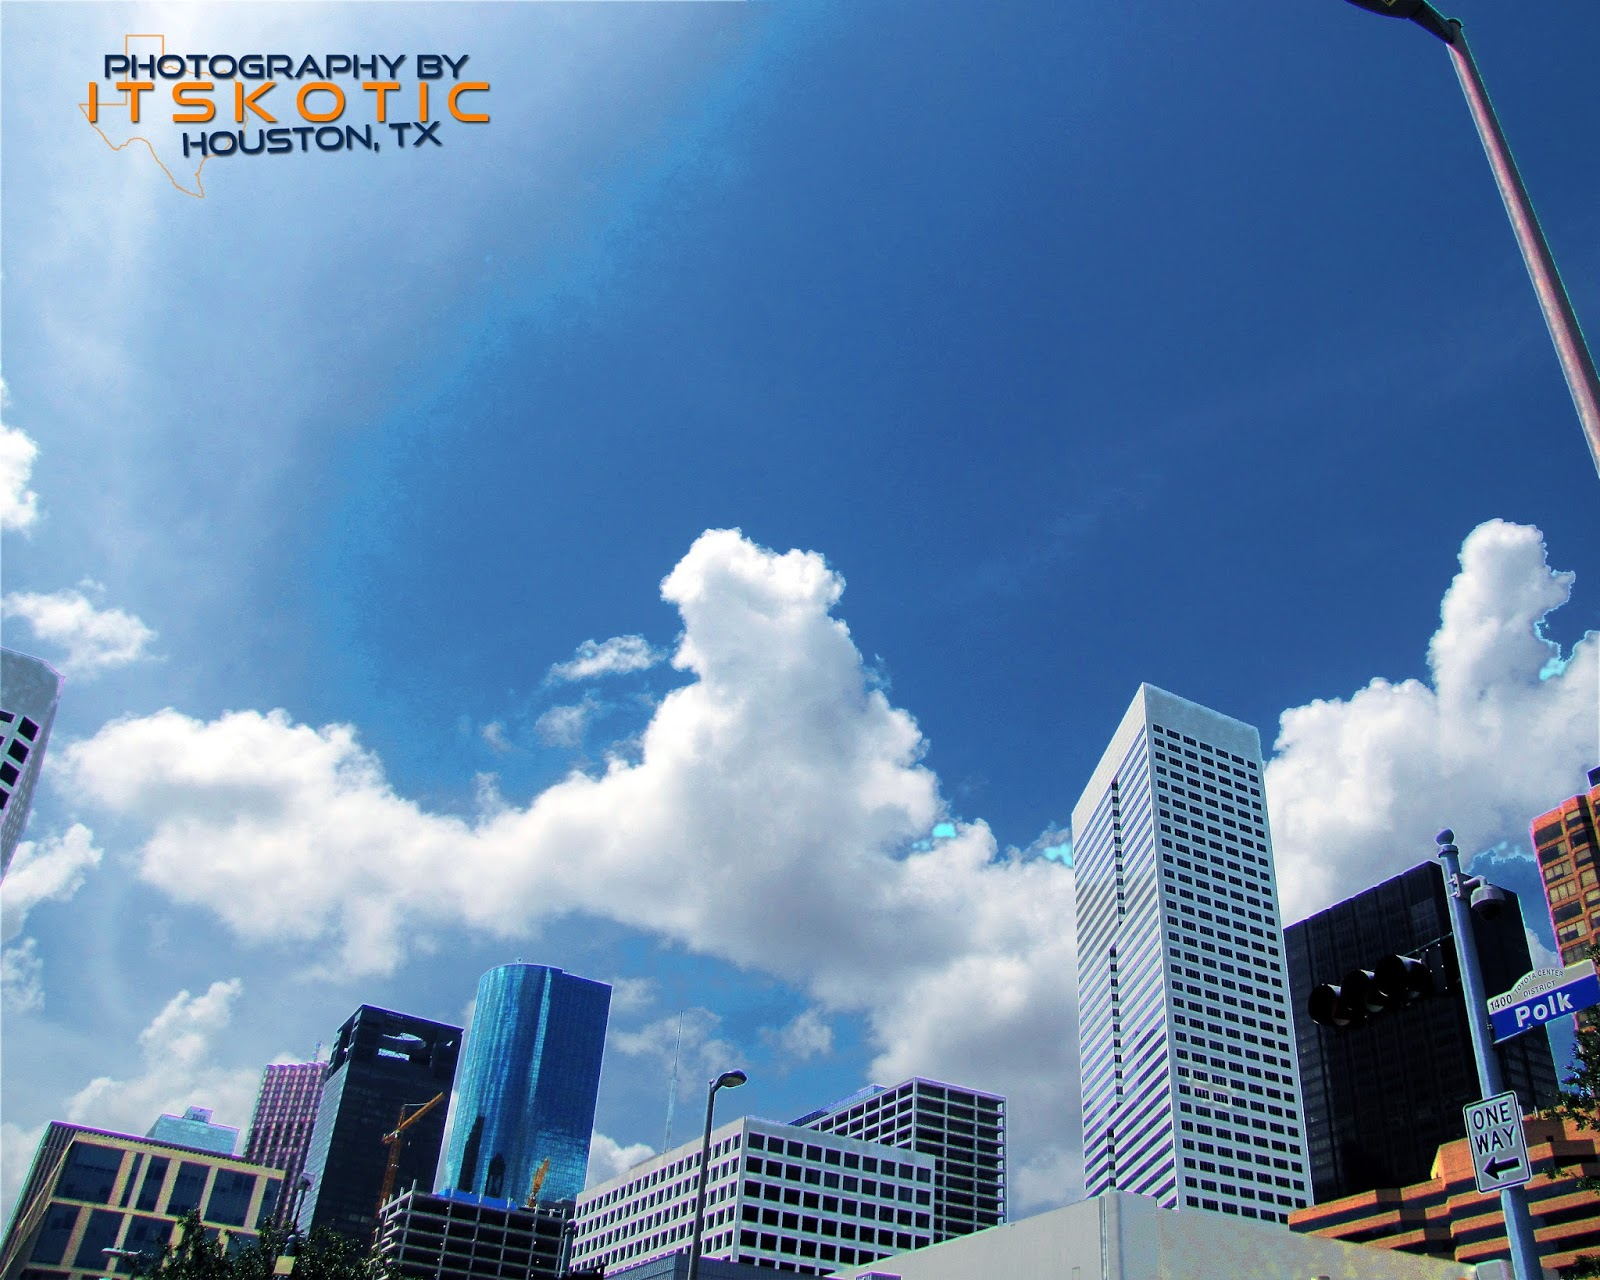 Downtown Houston Texas Skyline clouds picture photograph image